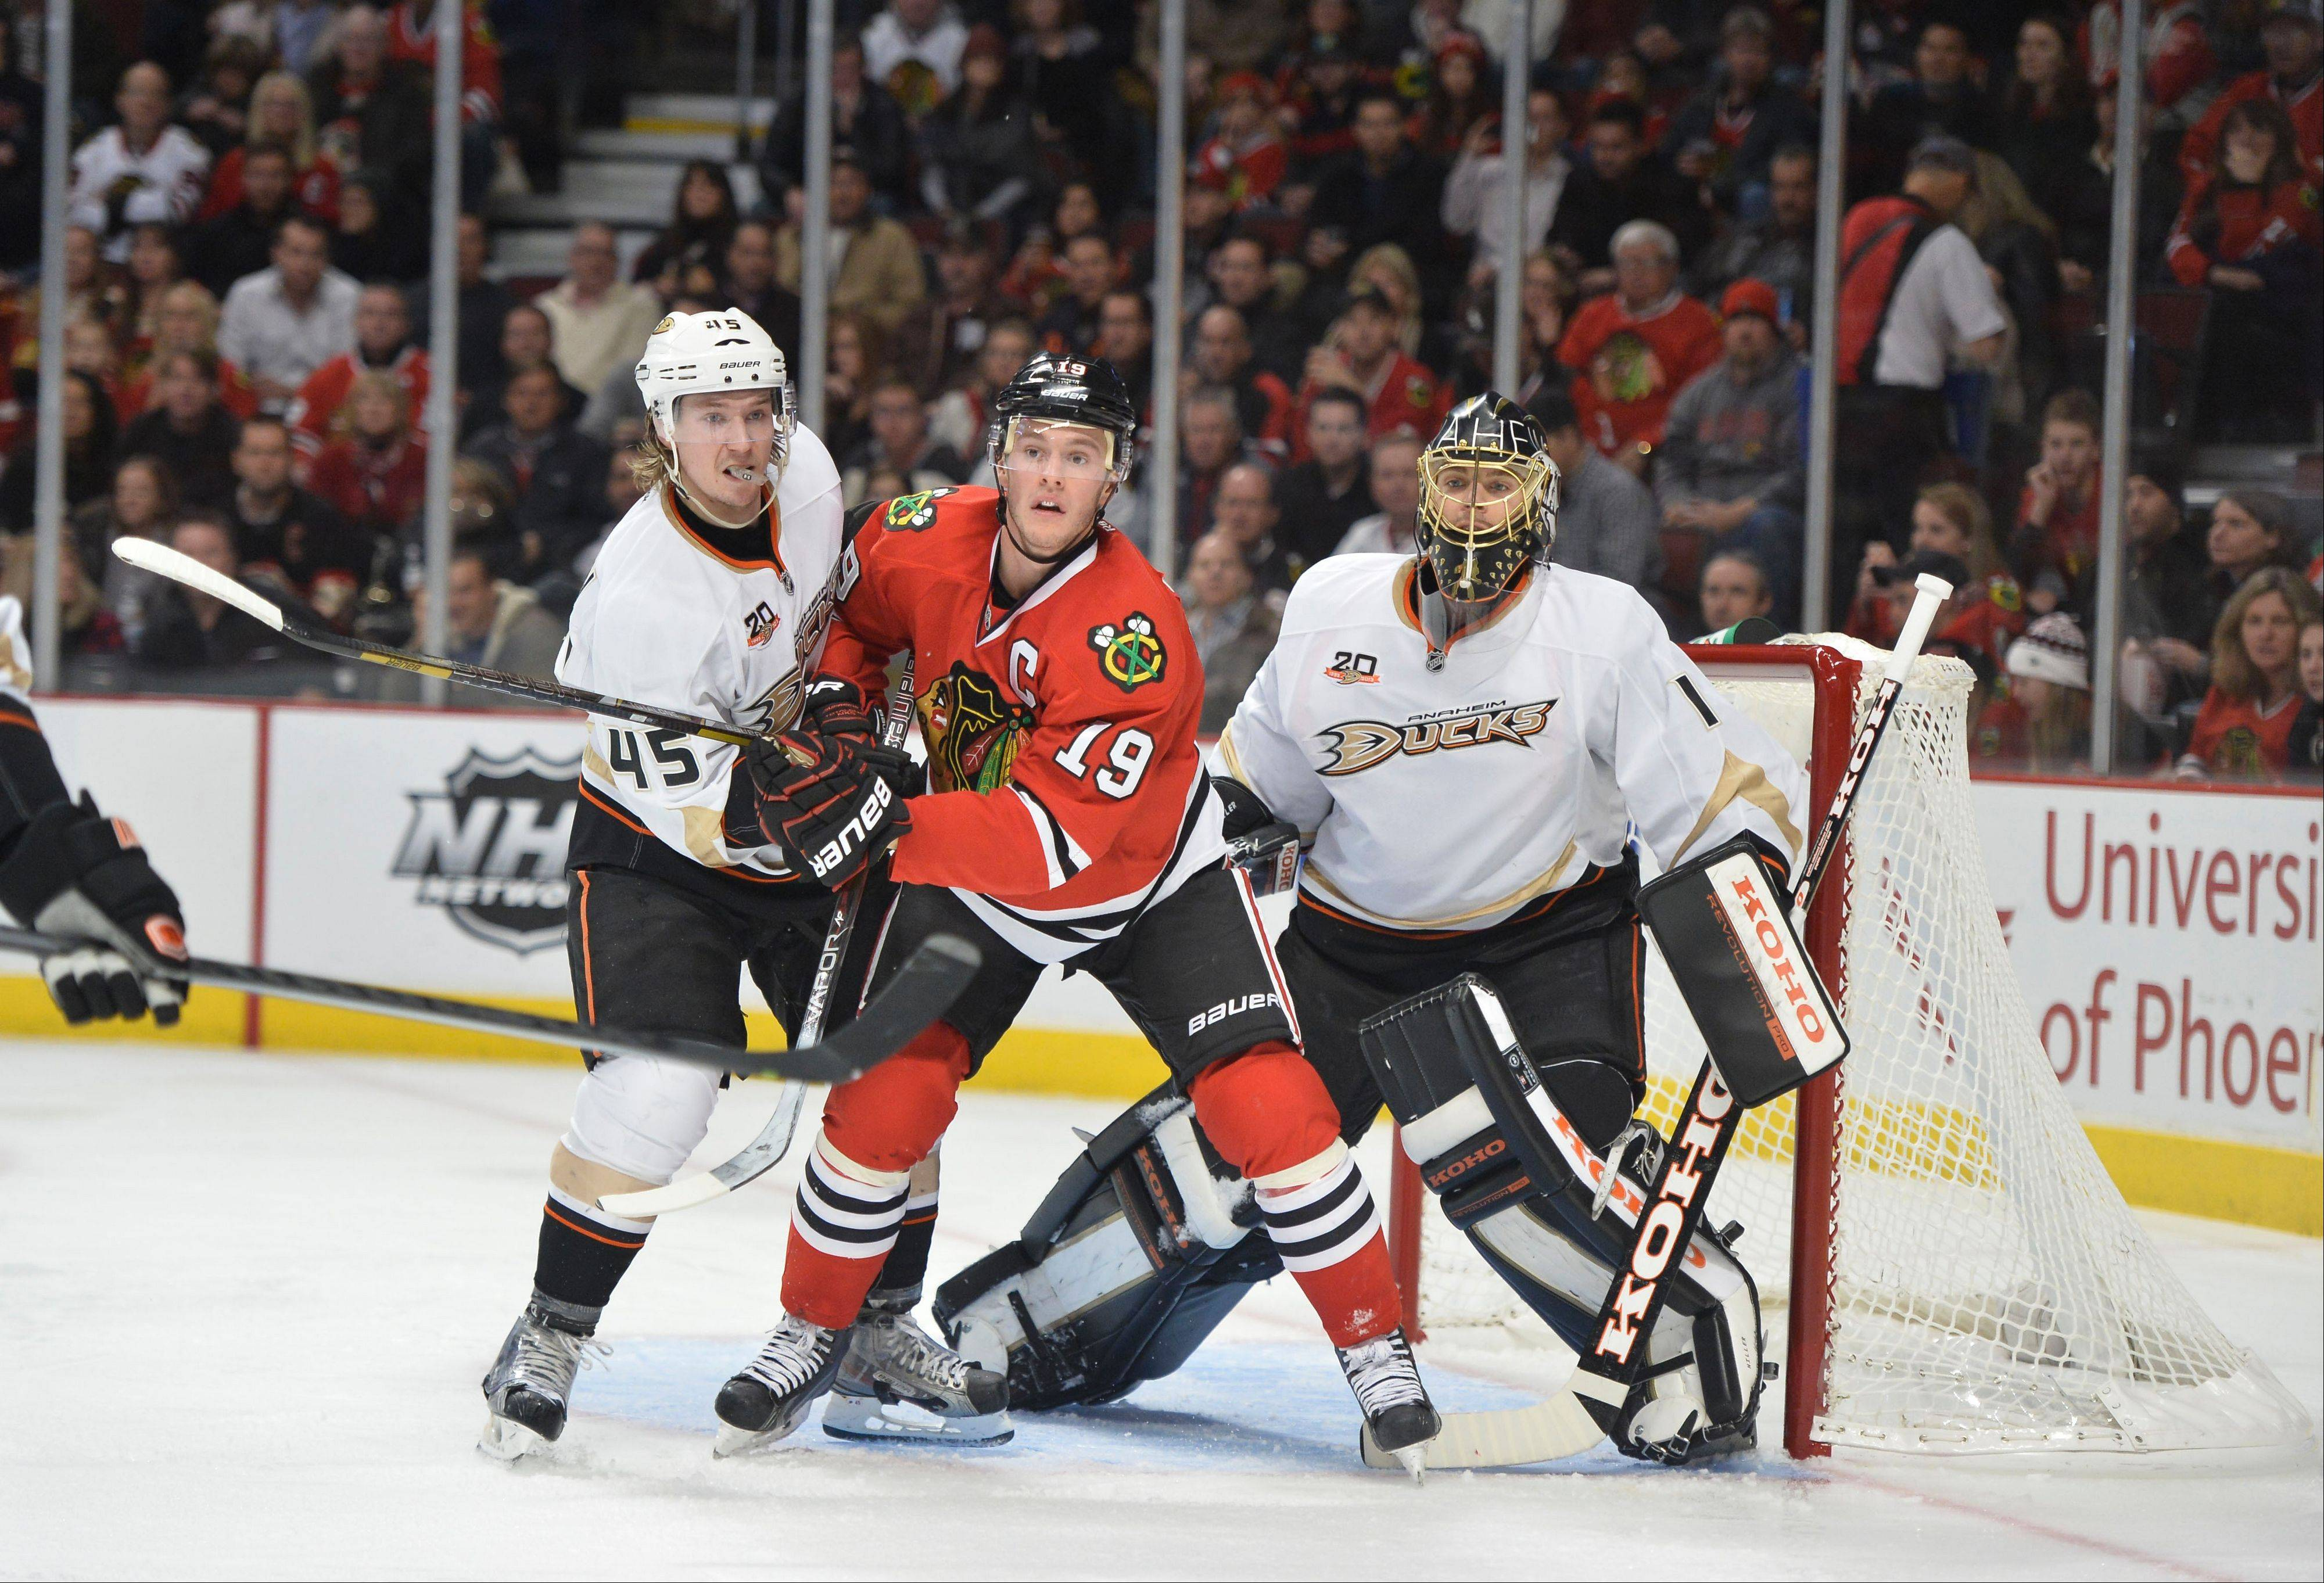 Blackhawks captain Jonathan Toews tried to screen Anaheim Ducks goalie Jonas Hiller when the teams met last month in Chicago. The Ducks, who won that game 3-2, have a six-point lead on the Blackhawks in the Western Conference.